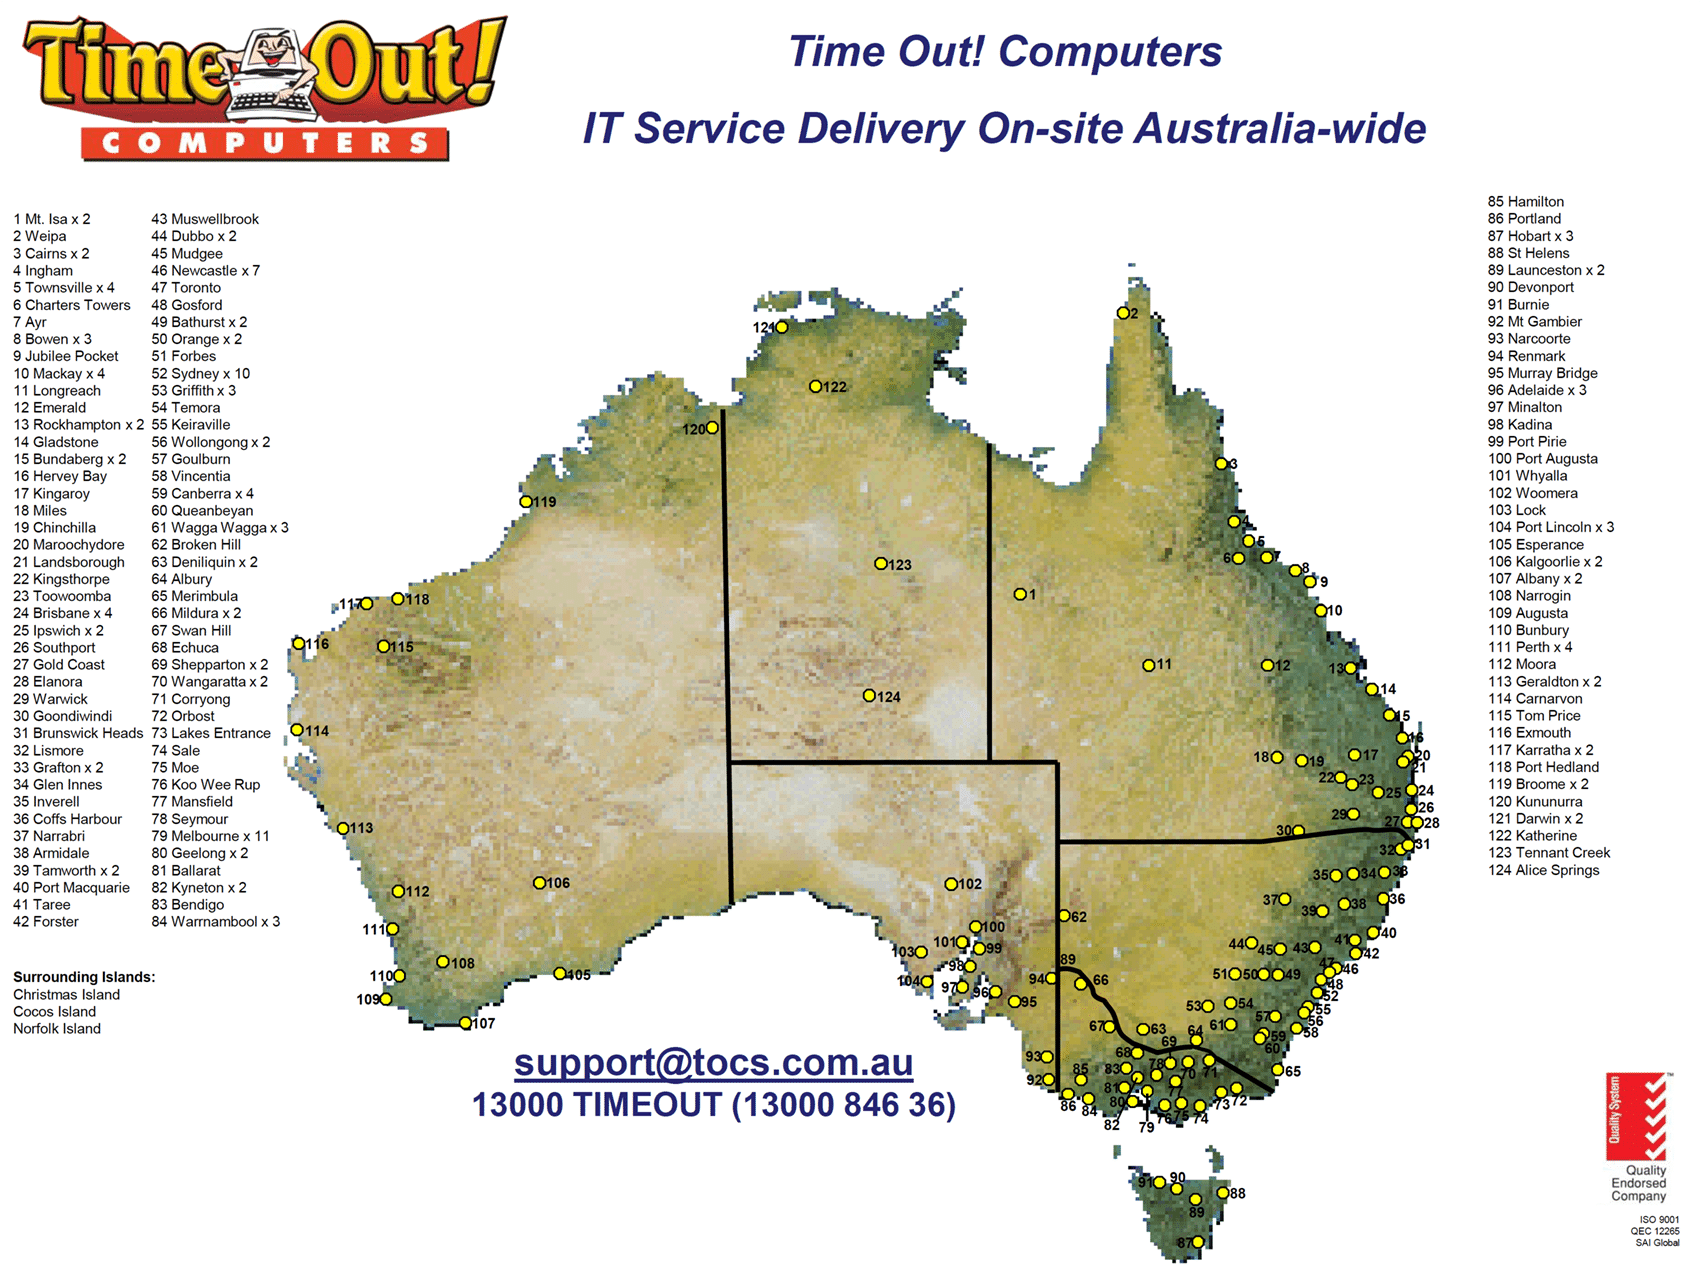 Australian Service Coverage Areas - Time Out! Computers